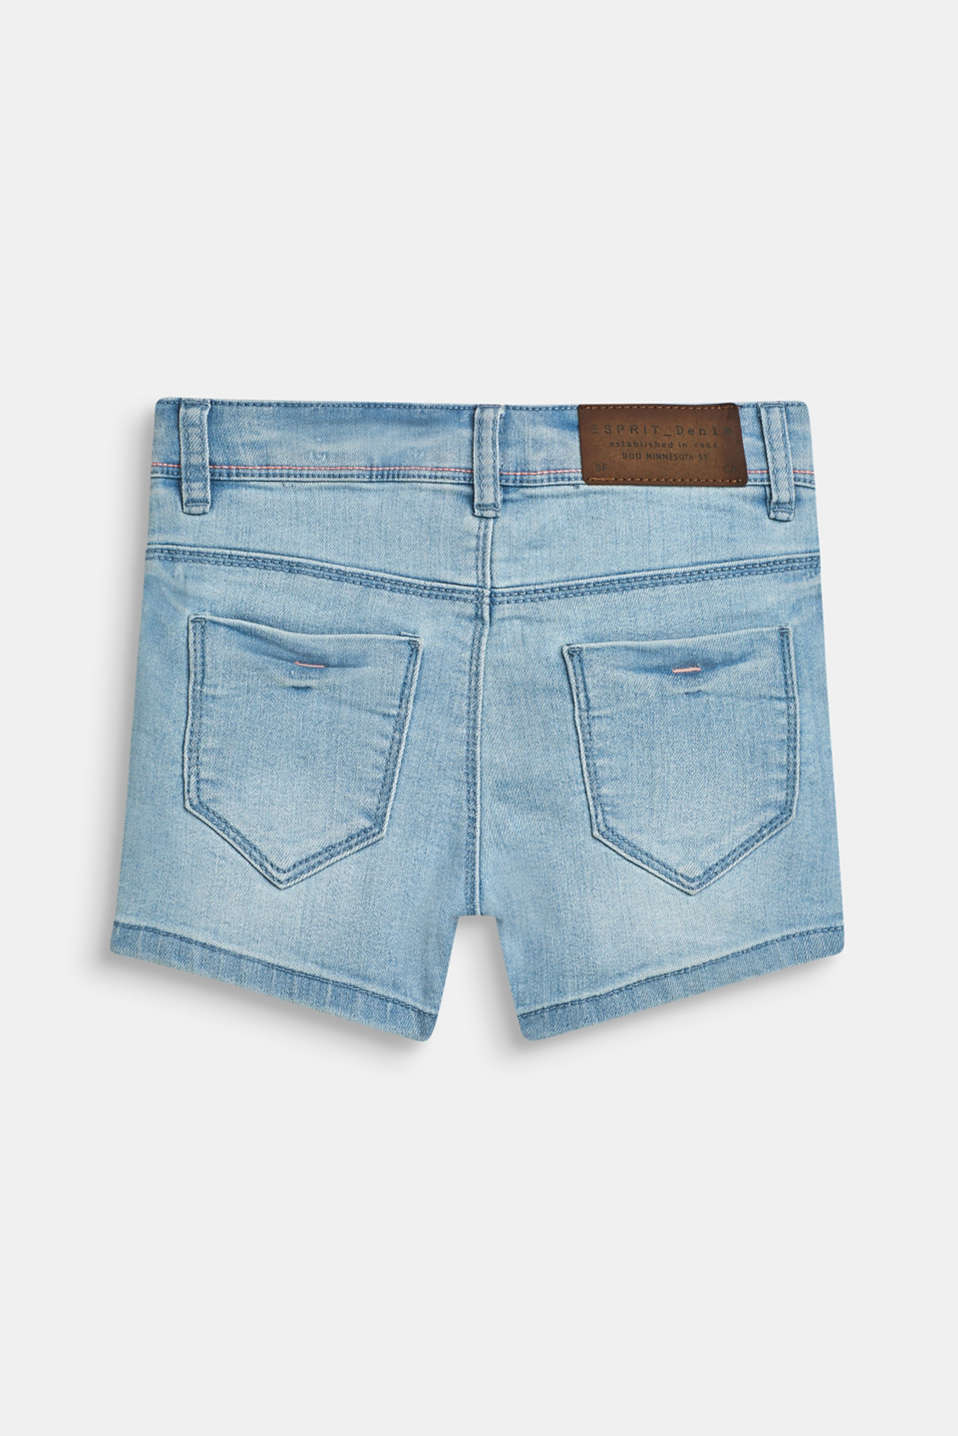 Shorts denim, LCBLEACHED DENIM, detail image number 1